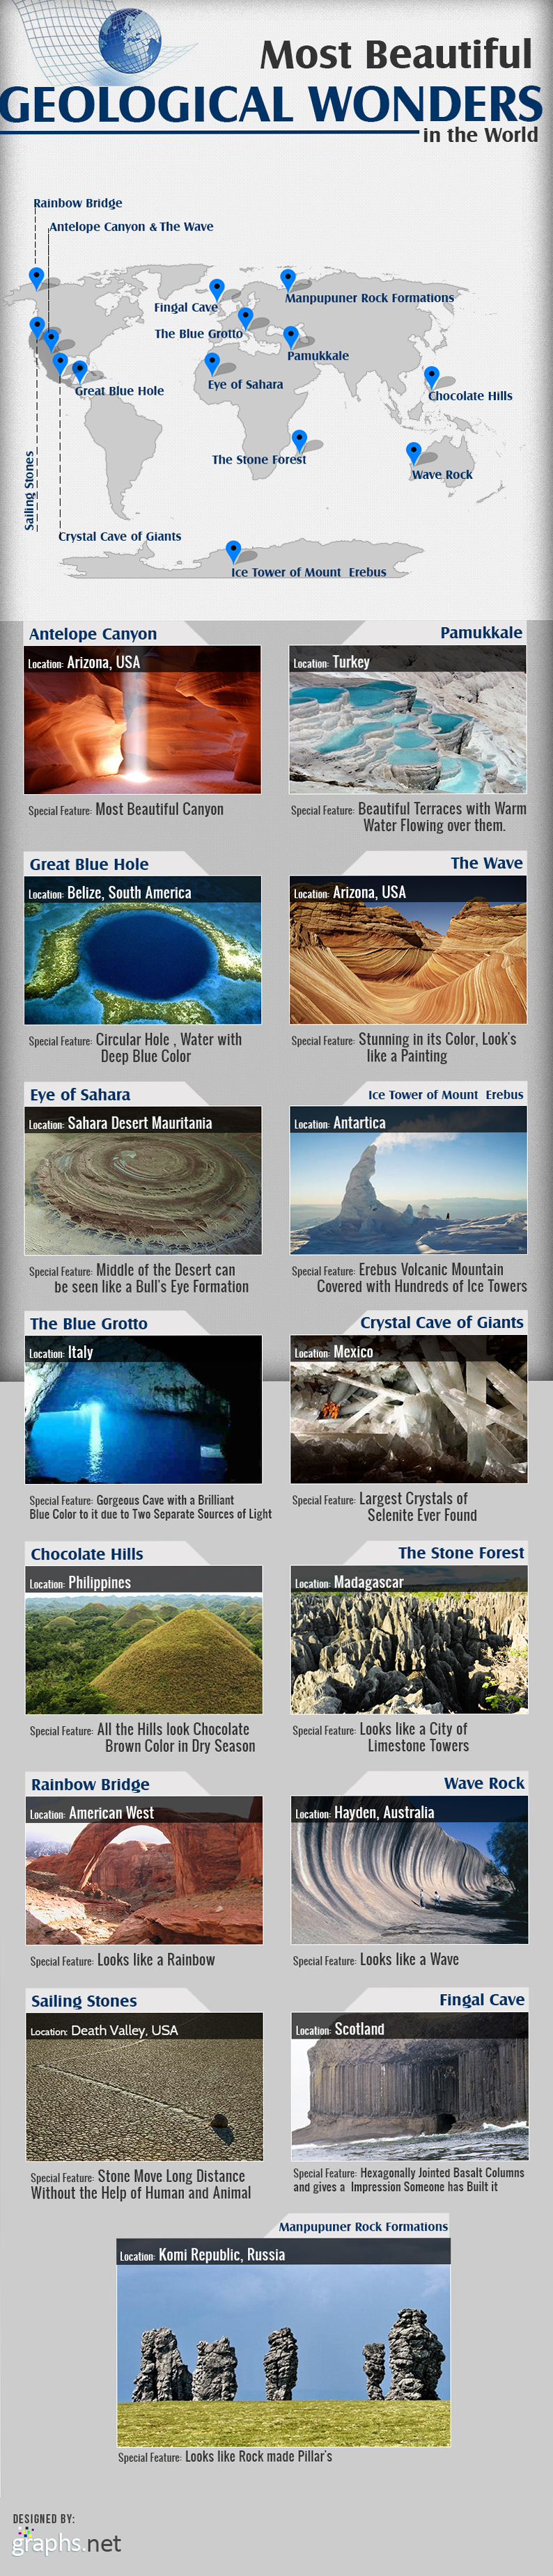 Most Beautiful Geological Wonders in the World